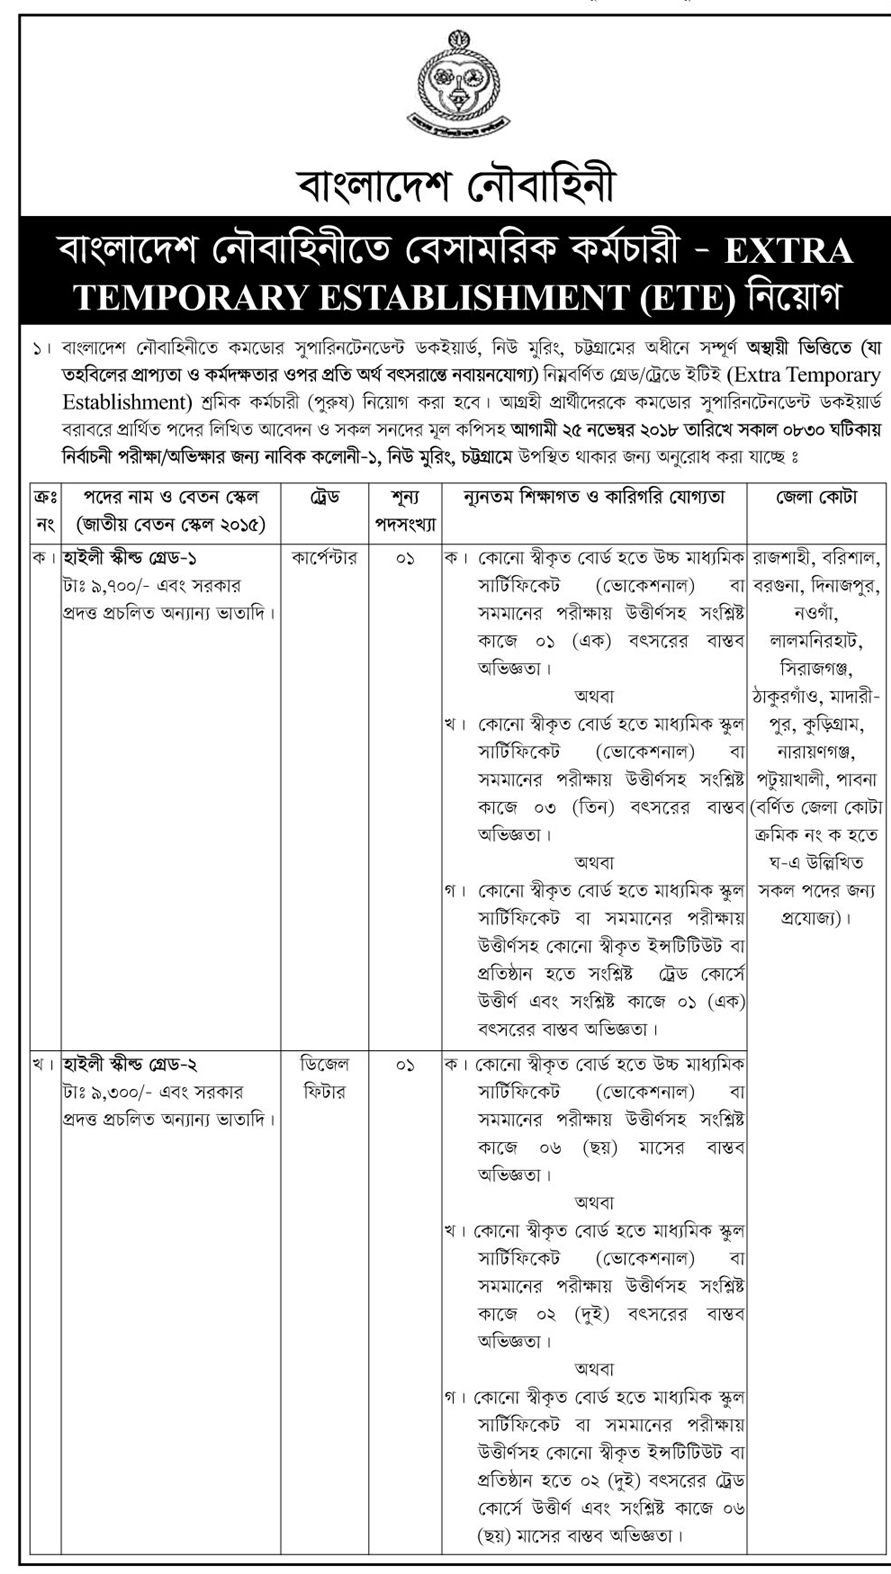 Bangladesh Navy Civilian Job Circular 2018